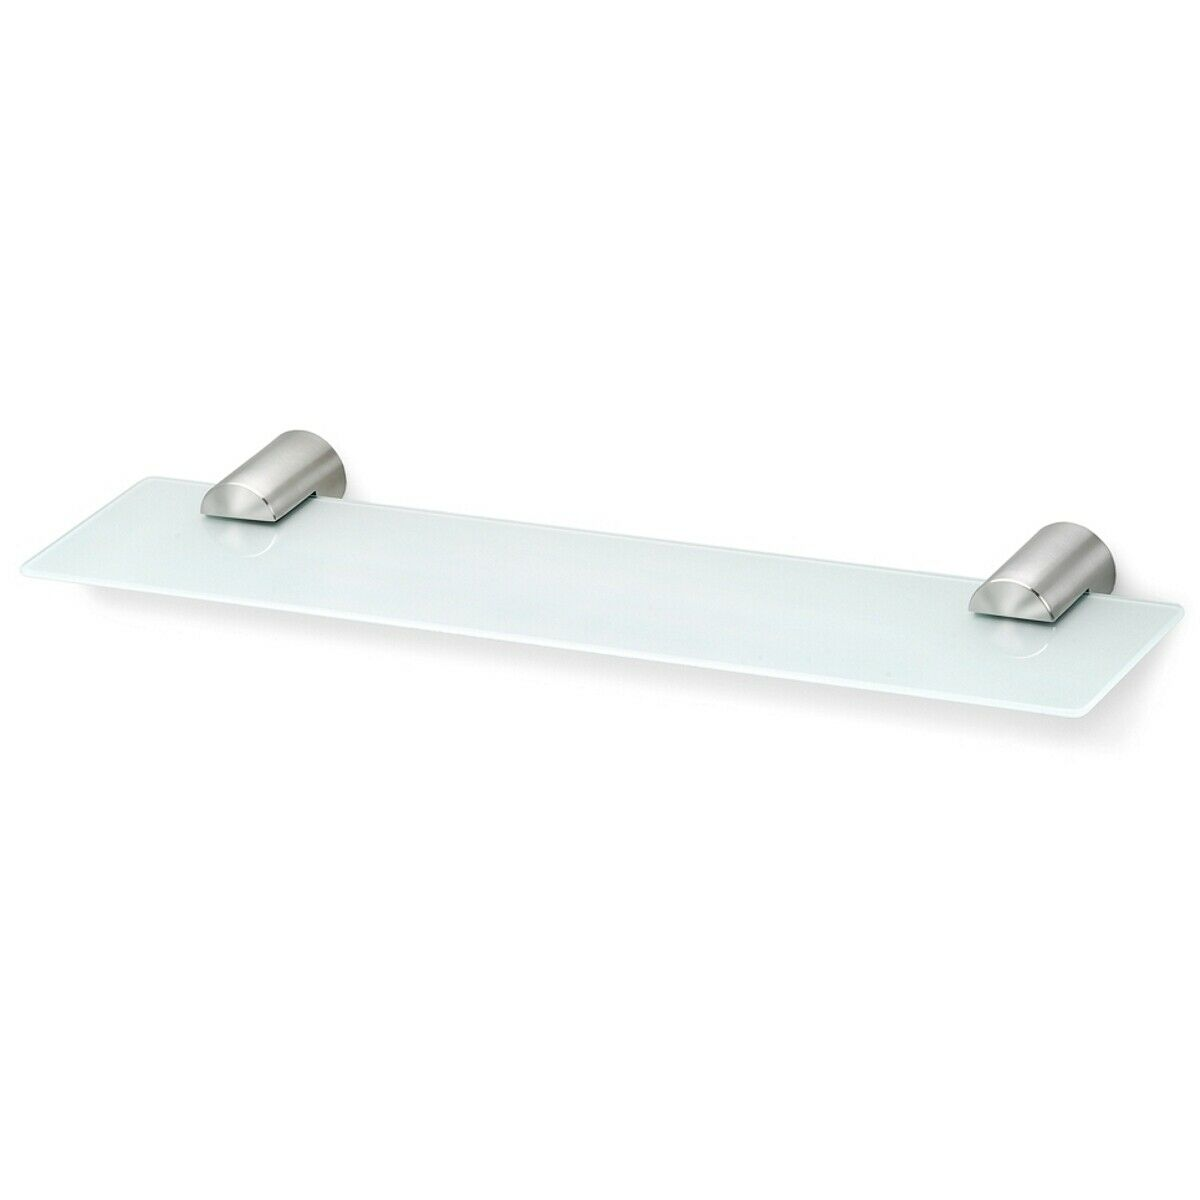 Blomus Stainless Steel and Glass Bathroom Shelf L50cm x D14cm